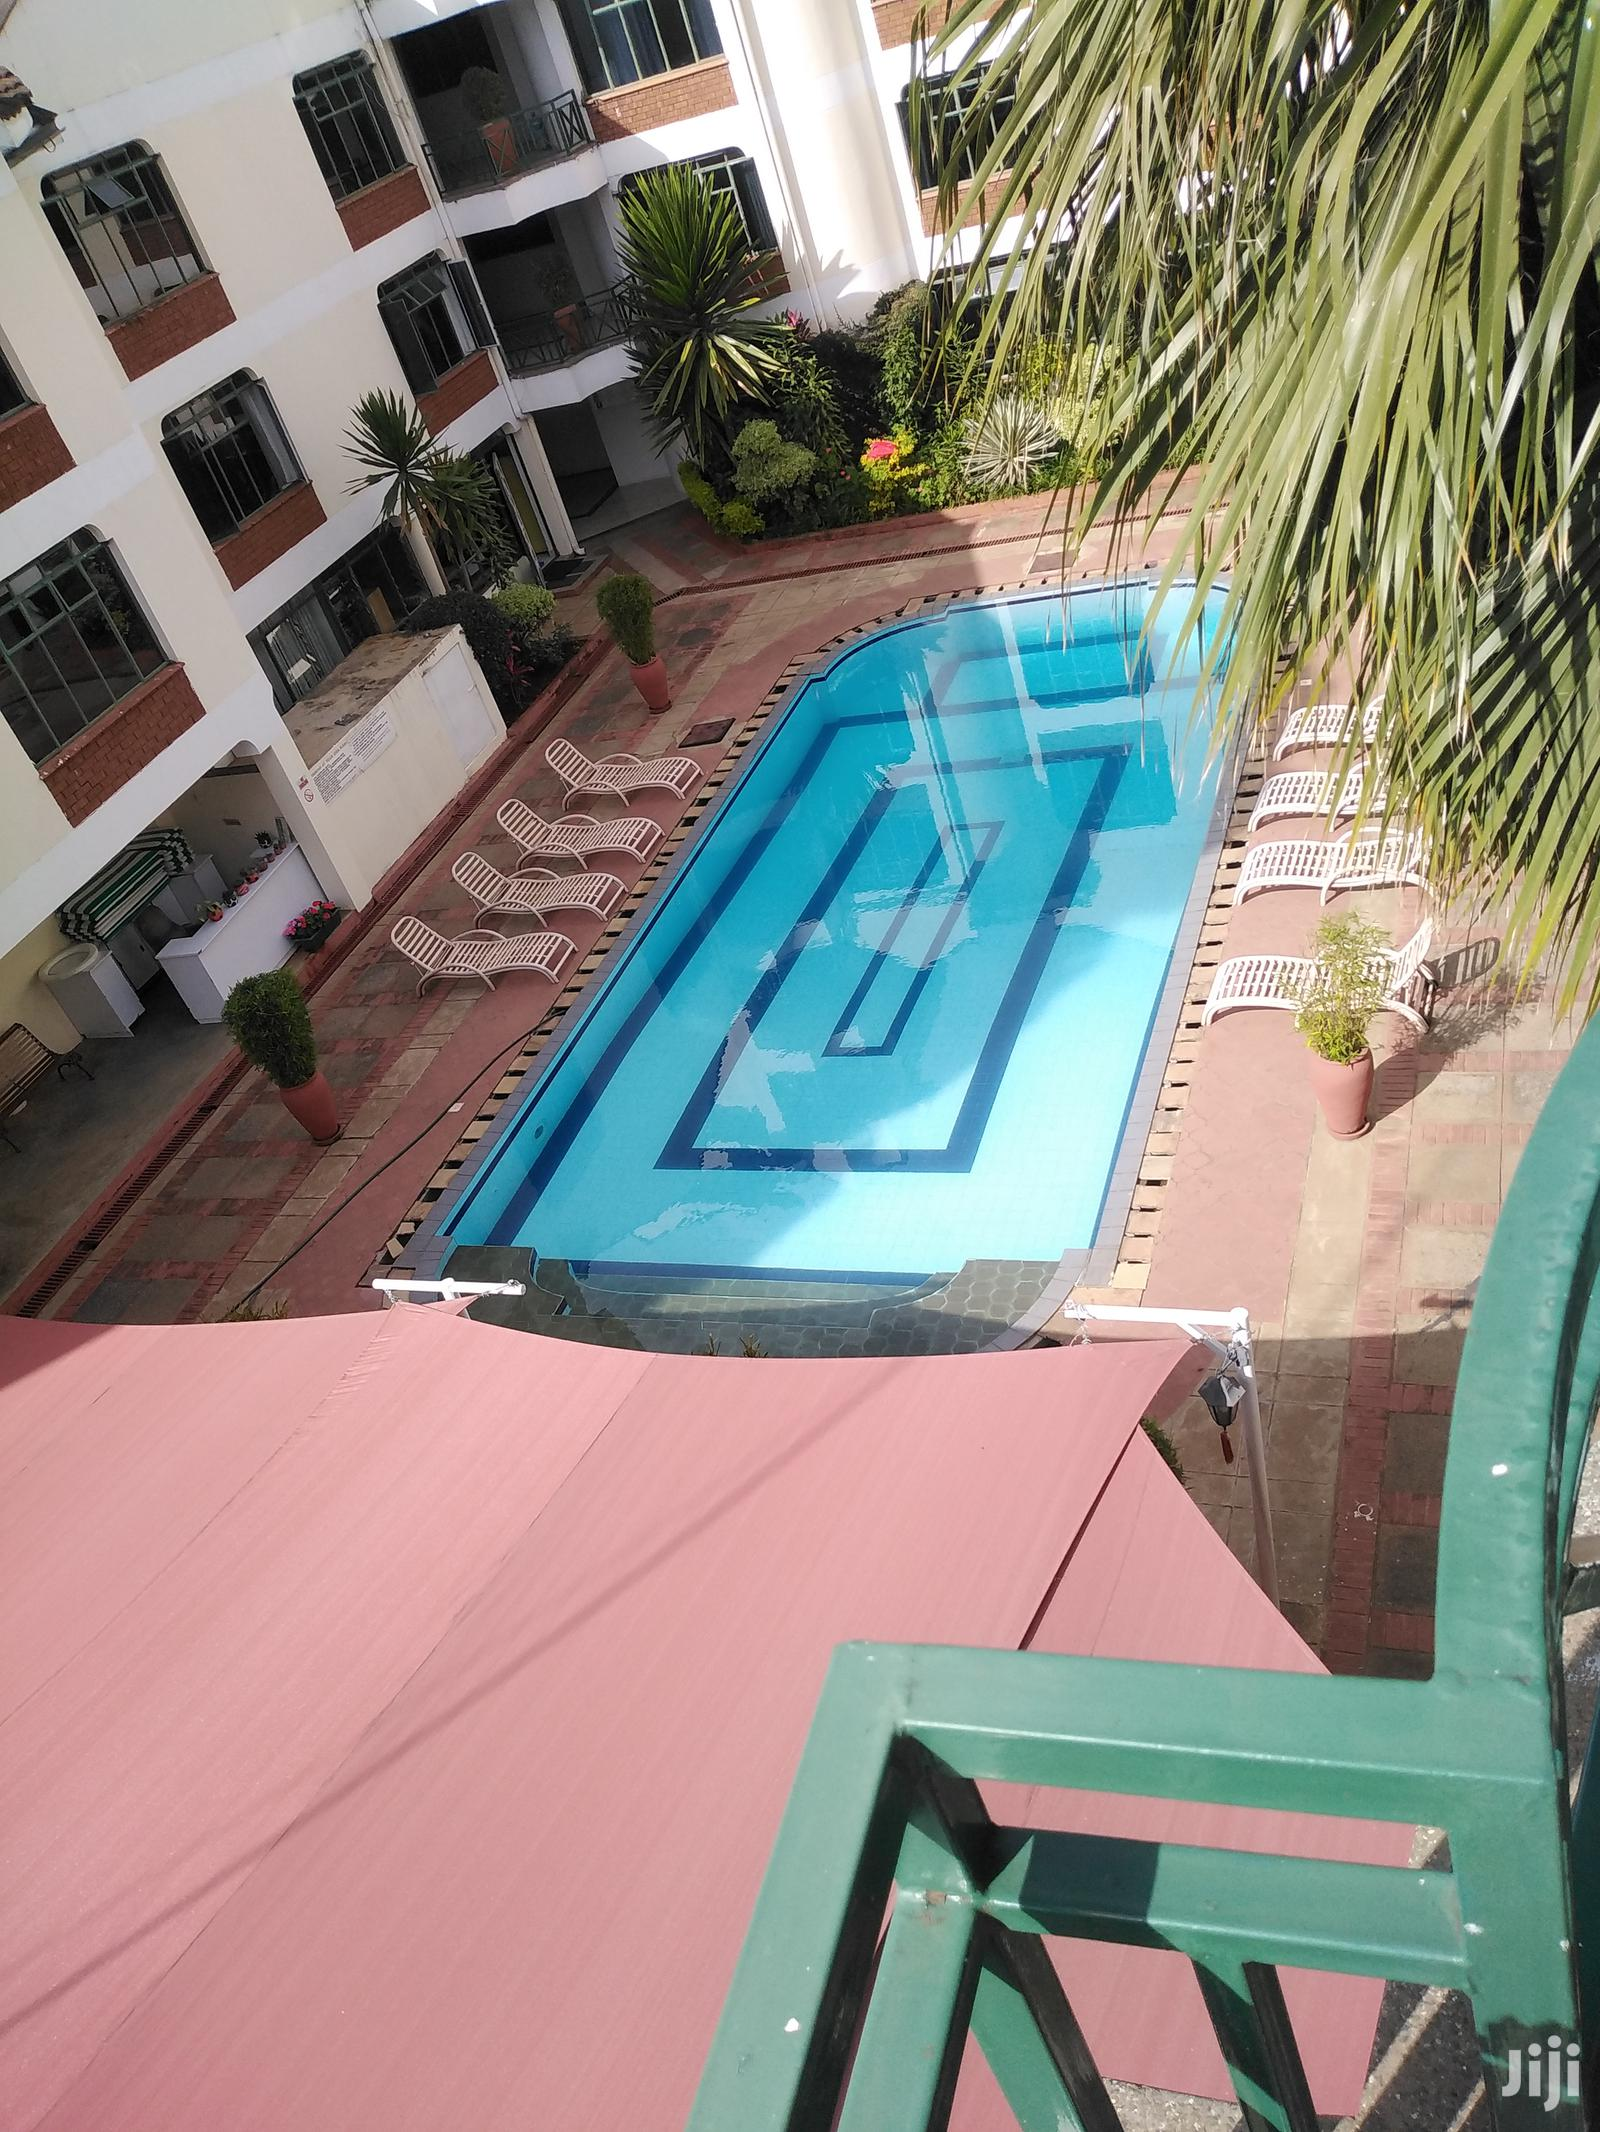 2 Bedroom Furnished & Unfurnished Apartments To Let - Lavington | Houses & Apartments For Rent for sale in Lavington, Nairobi, Kenya